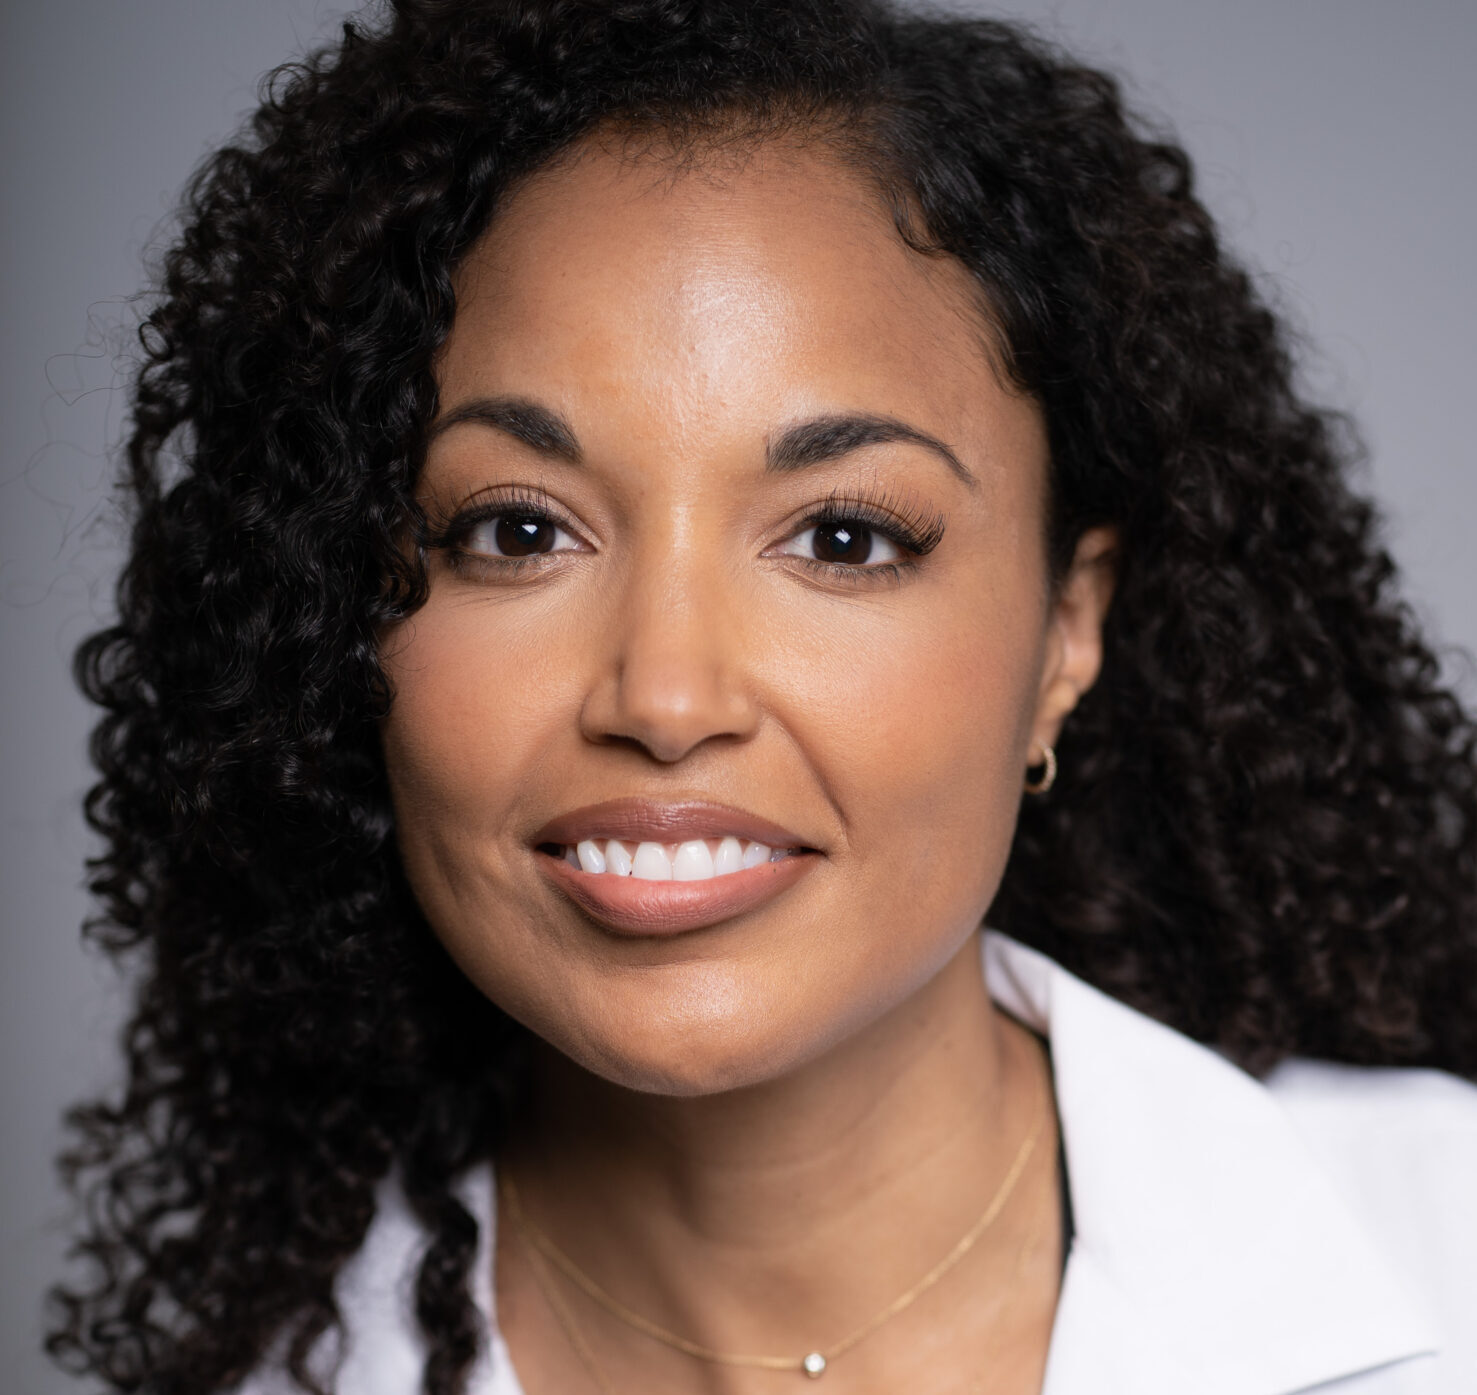 Dr. Aneesah Smith M.D via @joinlcac